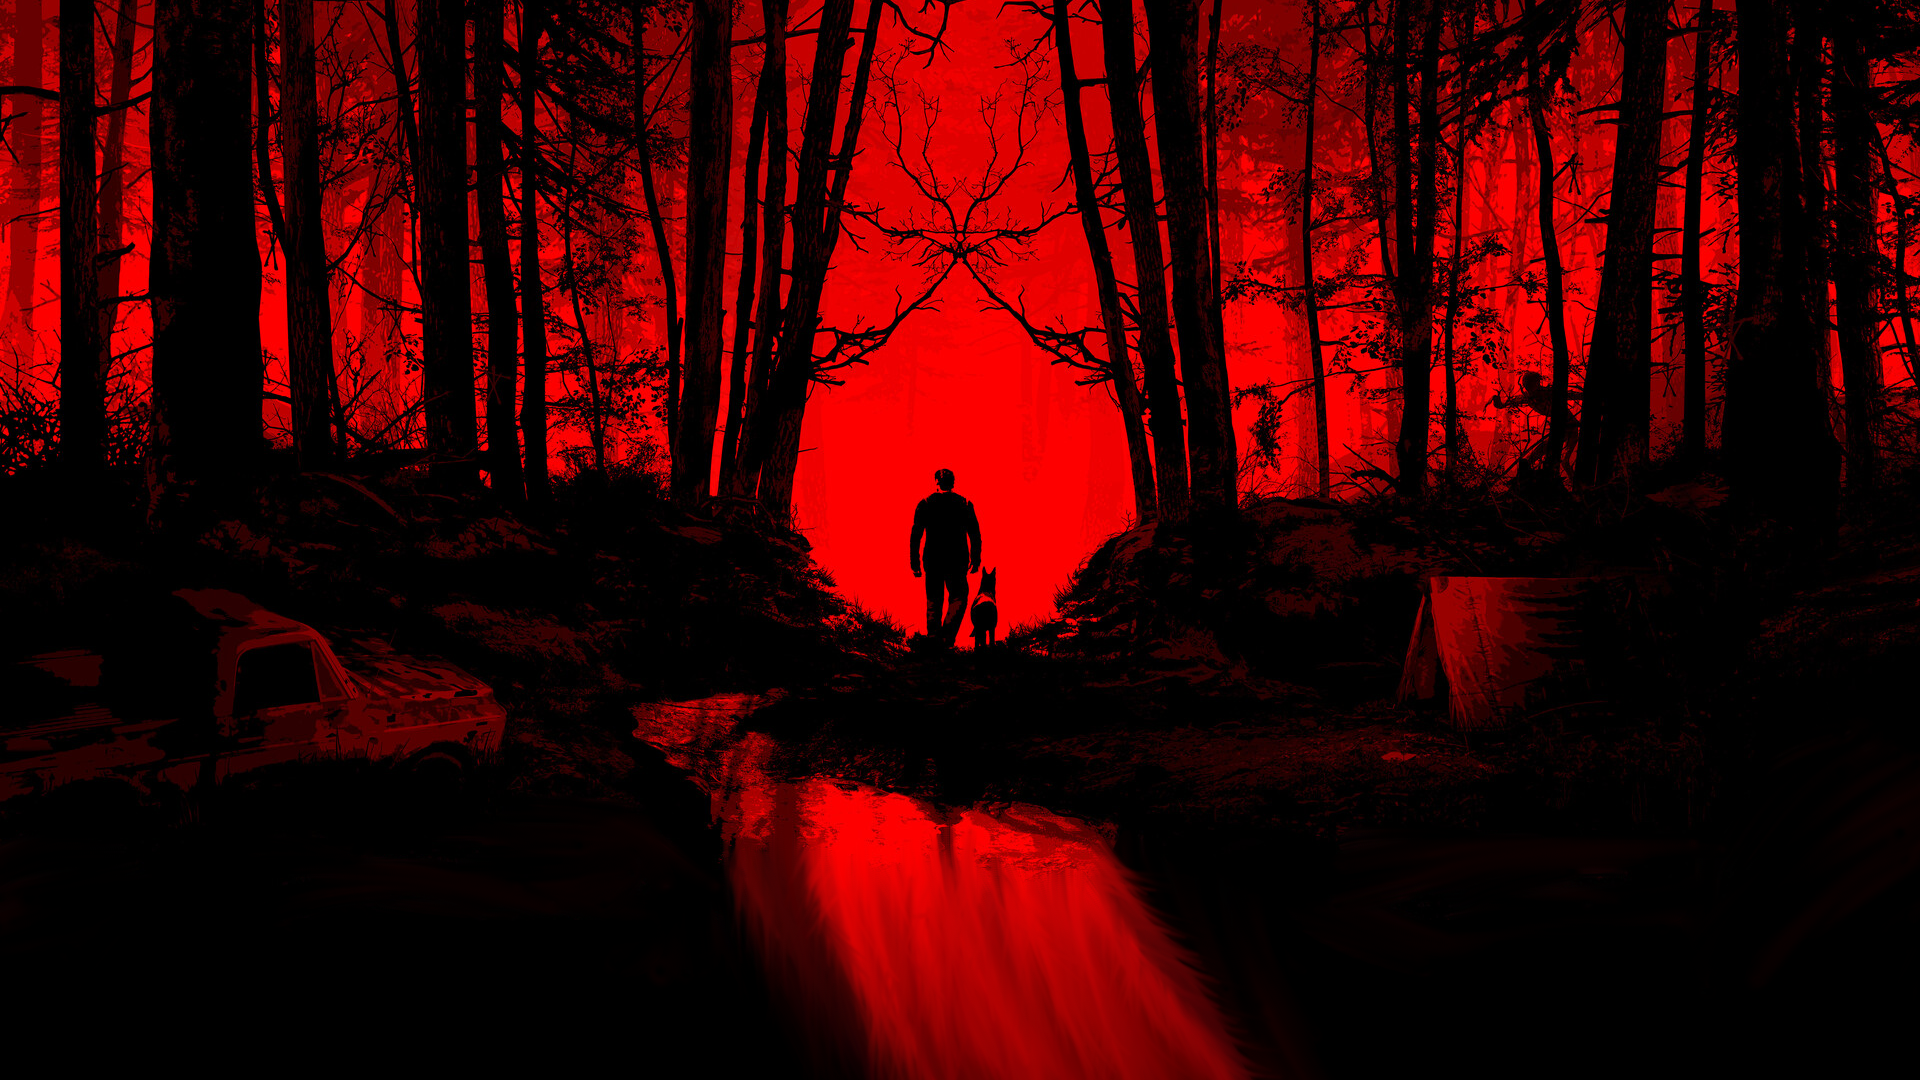 blair witch red and black artwork hd wallpaper background image 1920x1080 id 1079747 wallpaper abyss artwork hd wallpaper background image